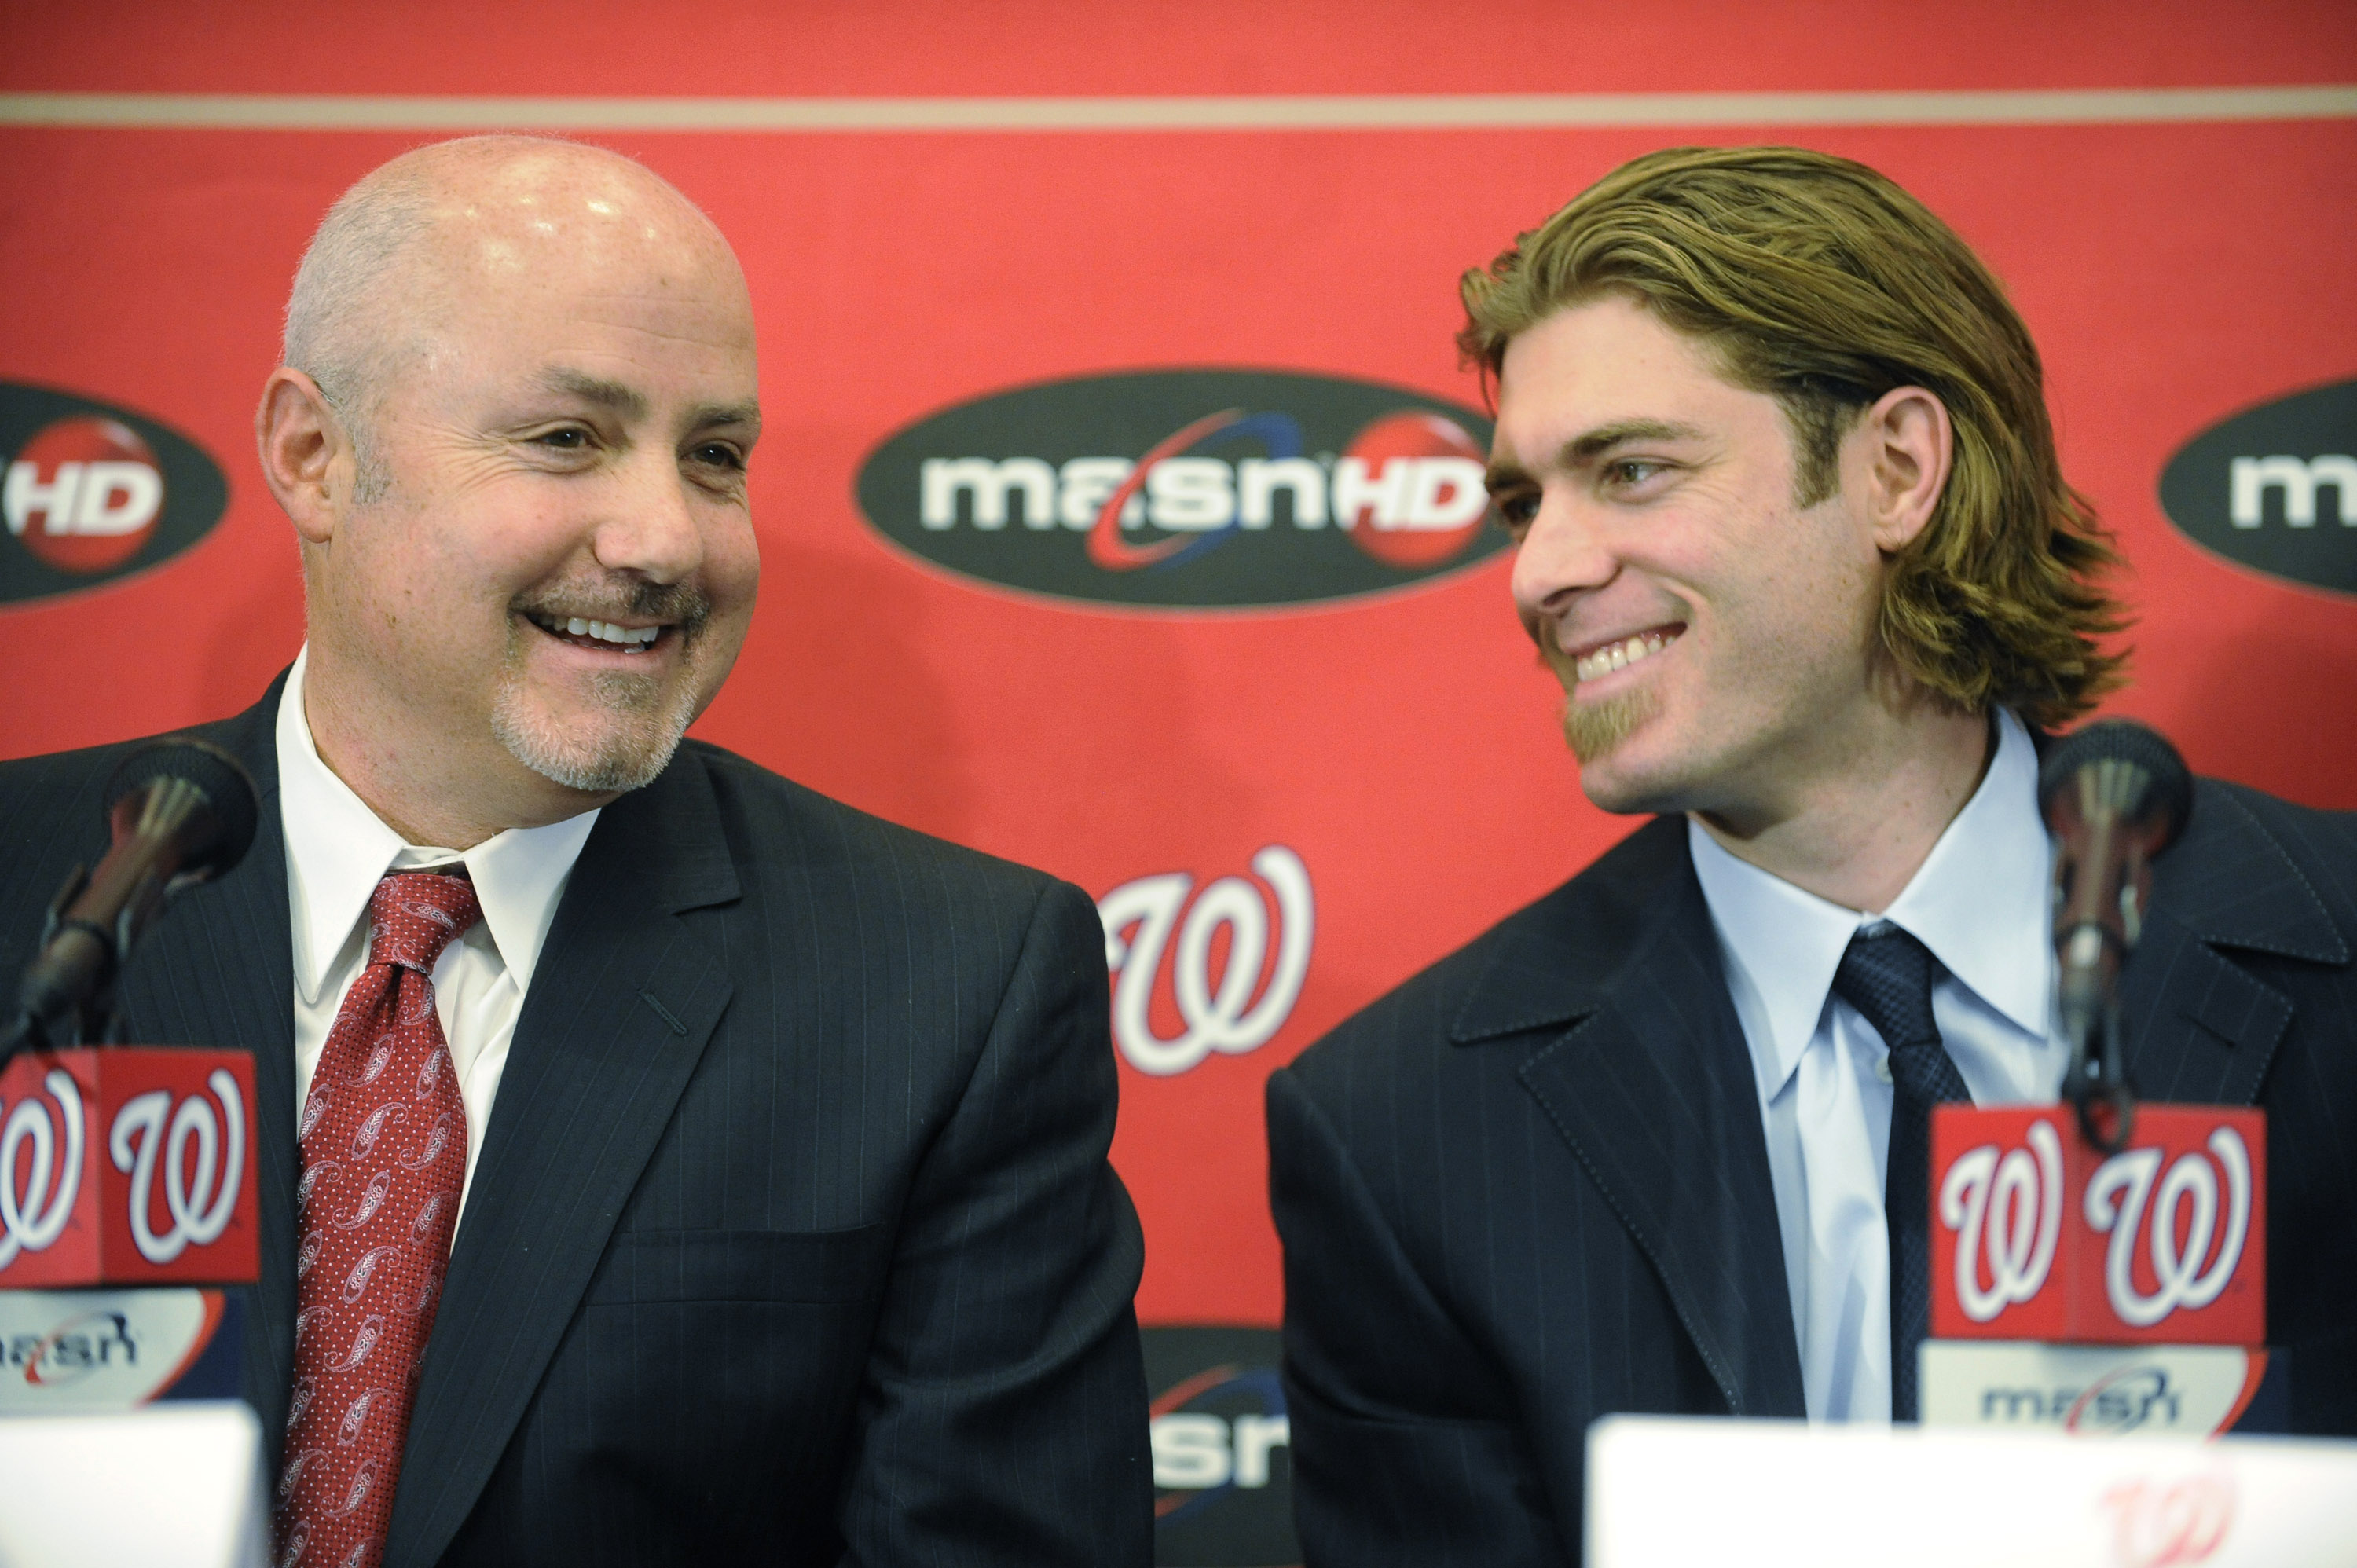 WASHINGTON, DC - DECEMBER 15:  Executive Vice President of Baseball Operations and General Manager Mike Rizzo introduces Jayson Werth #28  of the Washington Nationals to the media on December 15, 2010 at Nationals Park in Washington, DC.   (Photo by Mitch